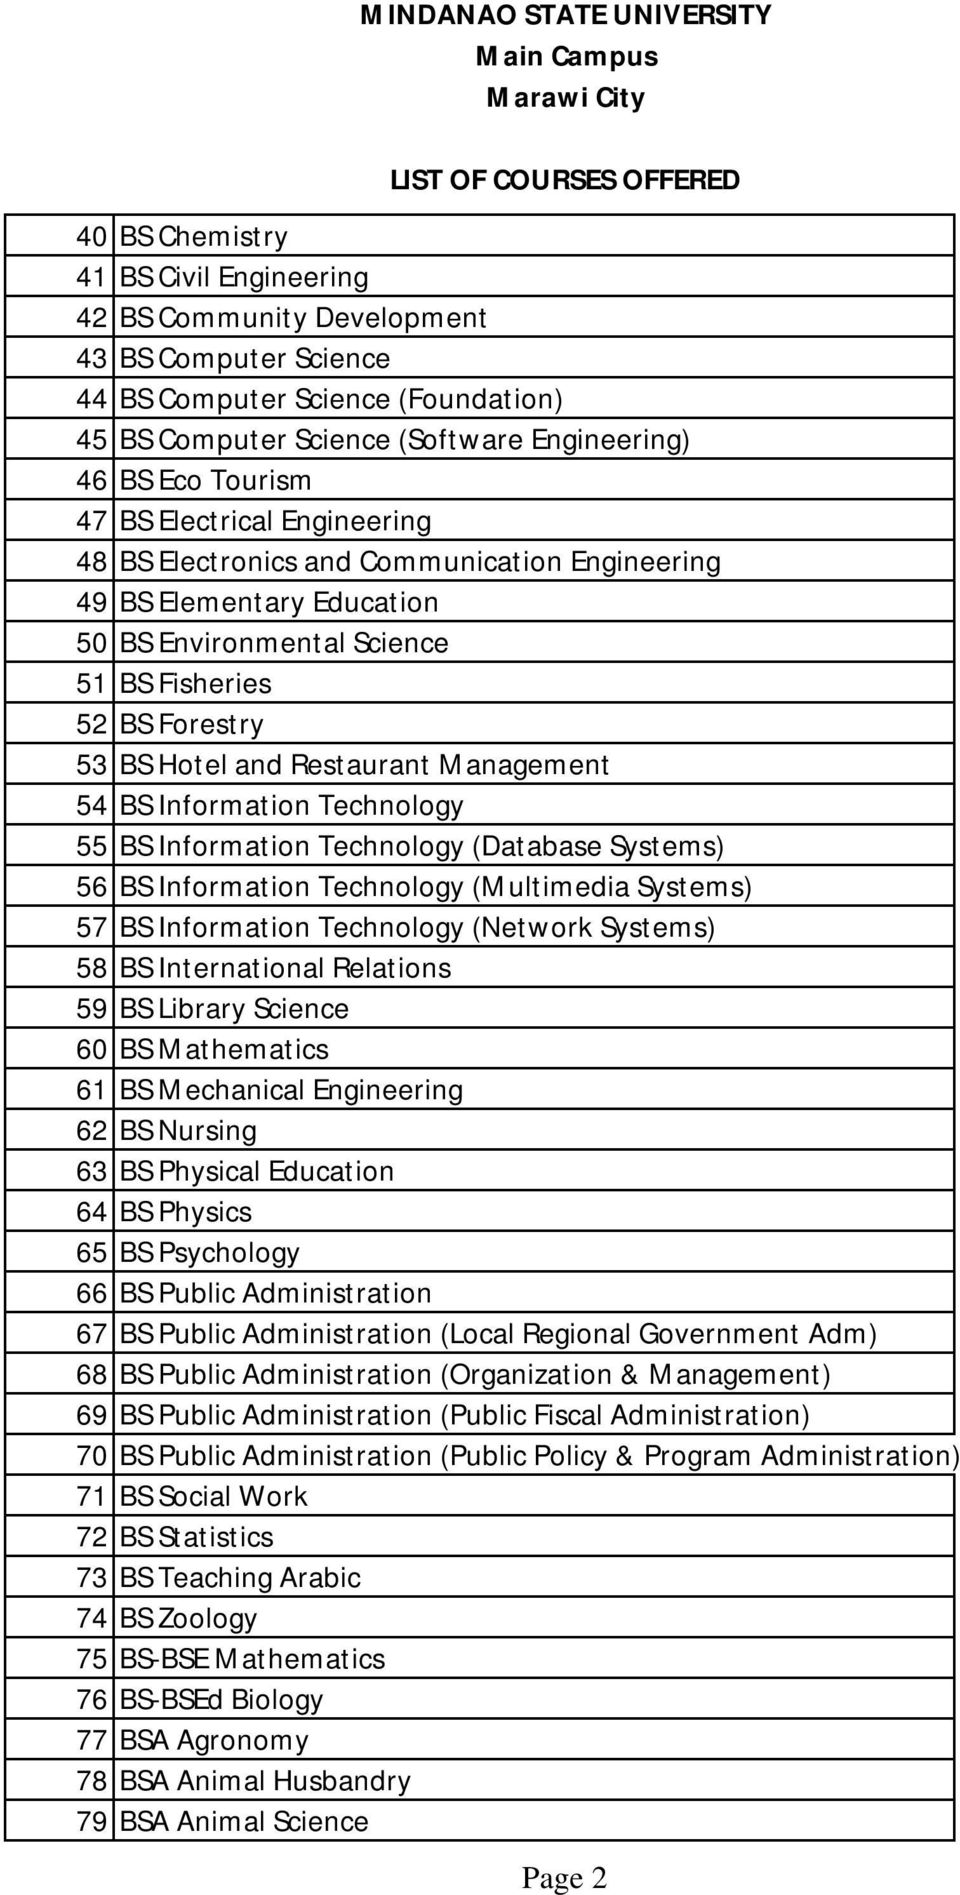 BS Information Technology 55 BS Information Technology (Database Systems) 56 BS Information Technology (Multimedia Systems) 57 BS Information Technology (Network Systems) 58 BS International